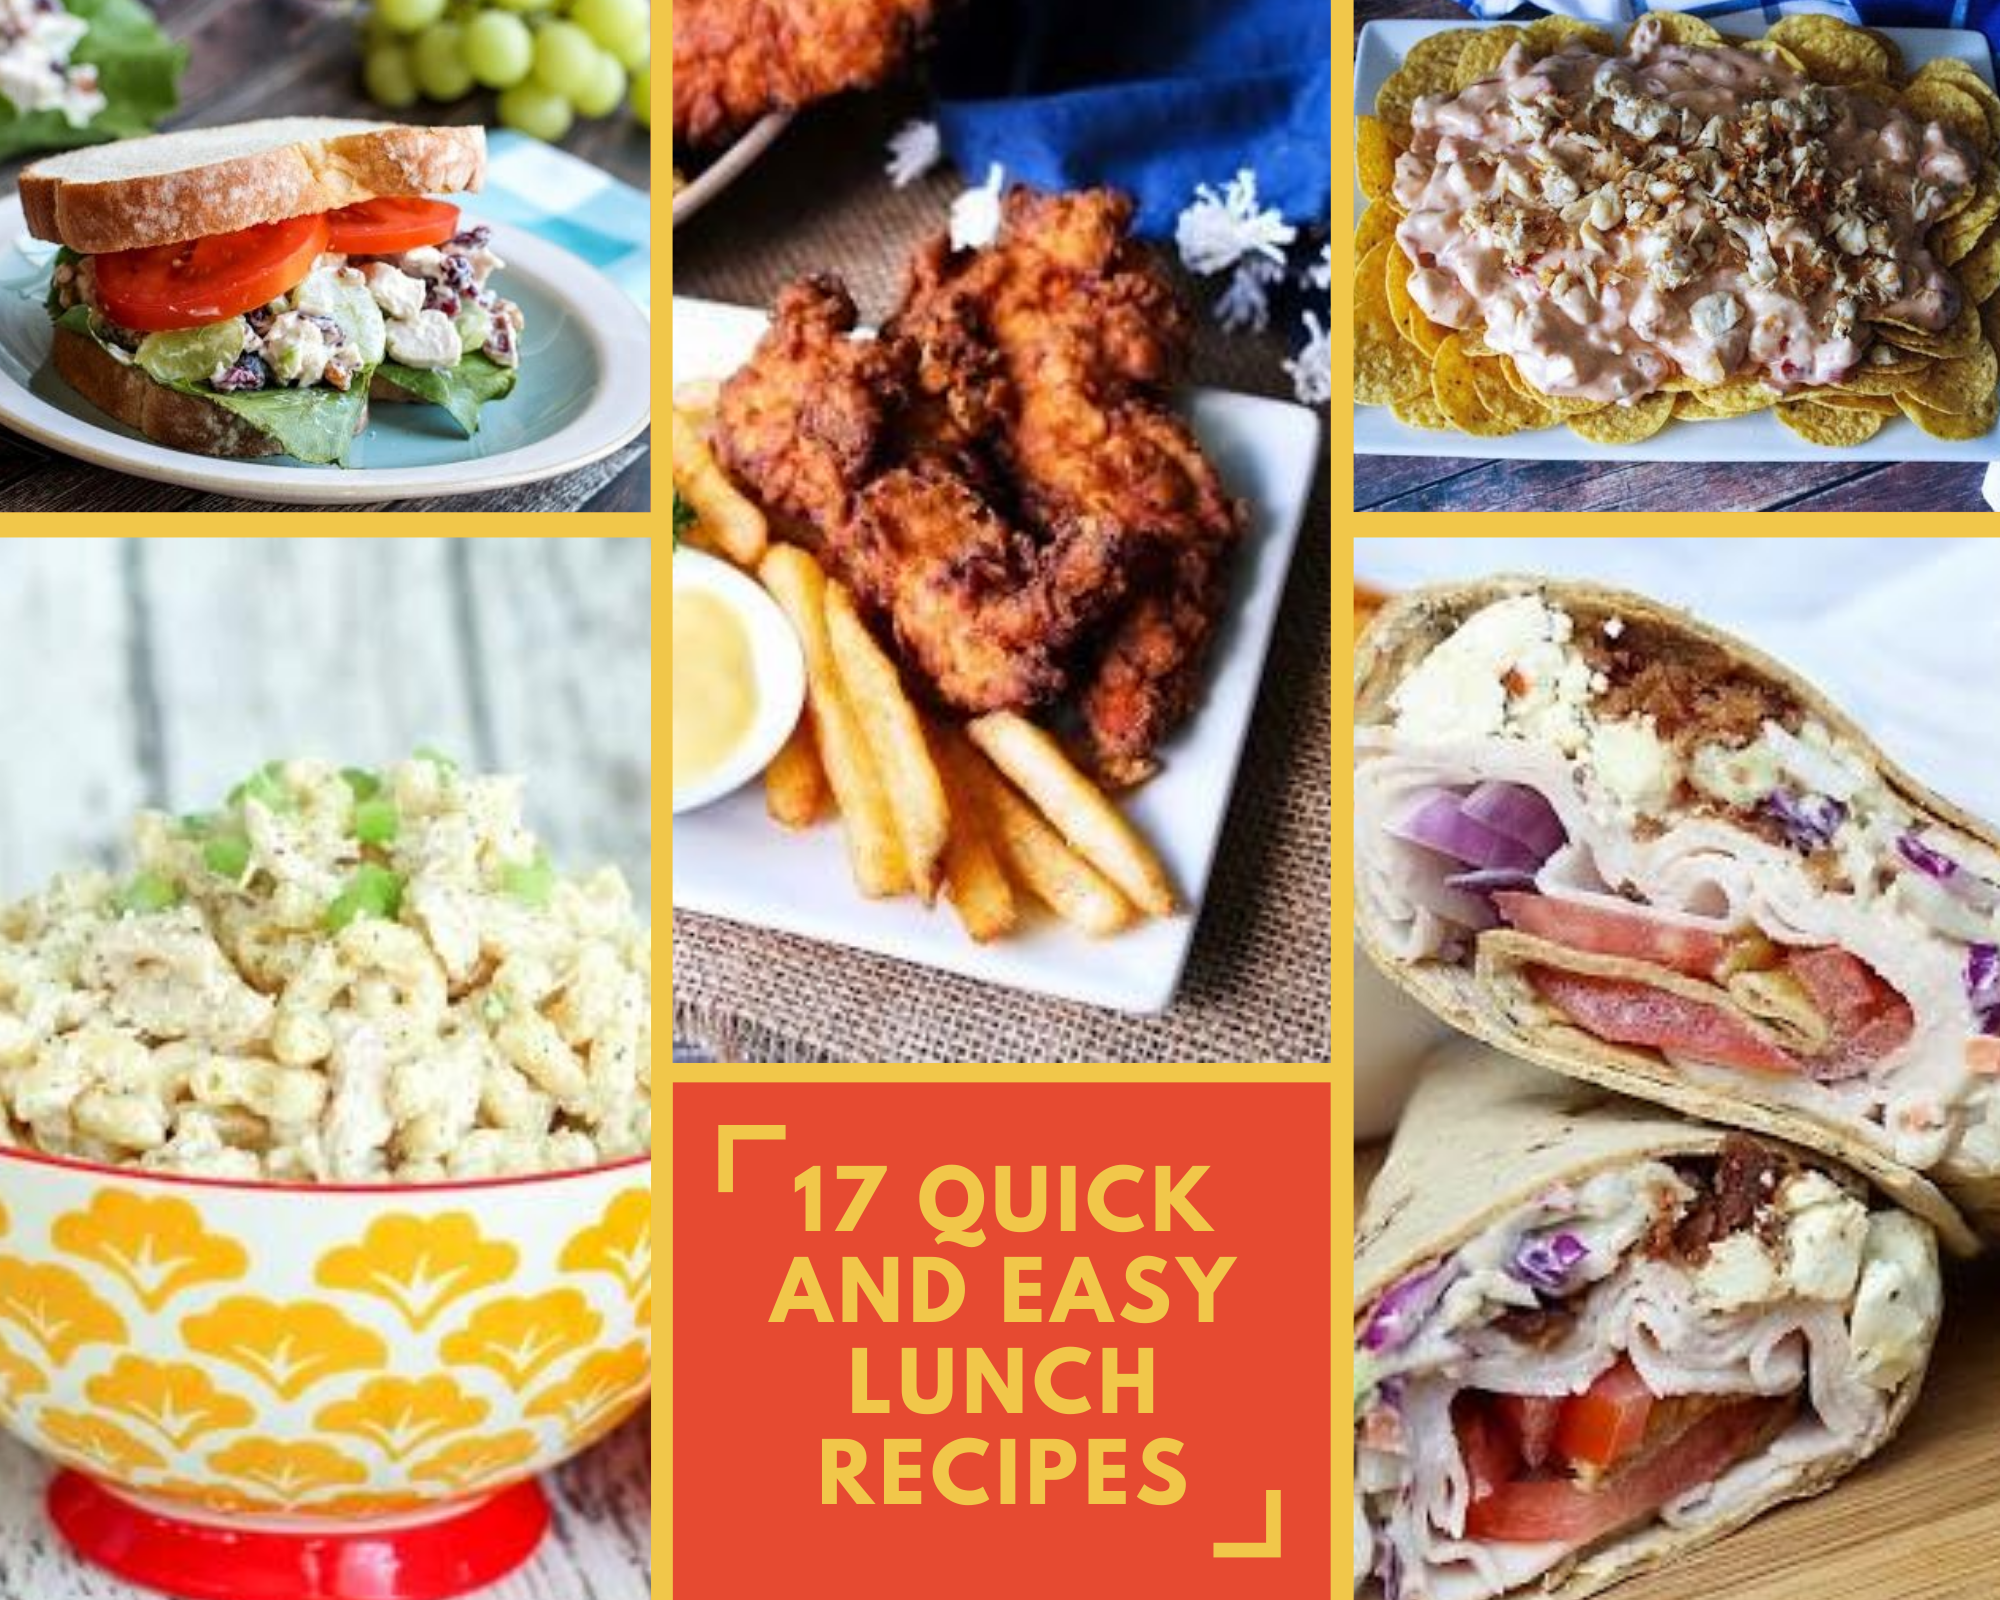 Chicken tenders, wraps, sandwiches and more lunch recipes